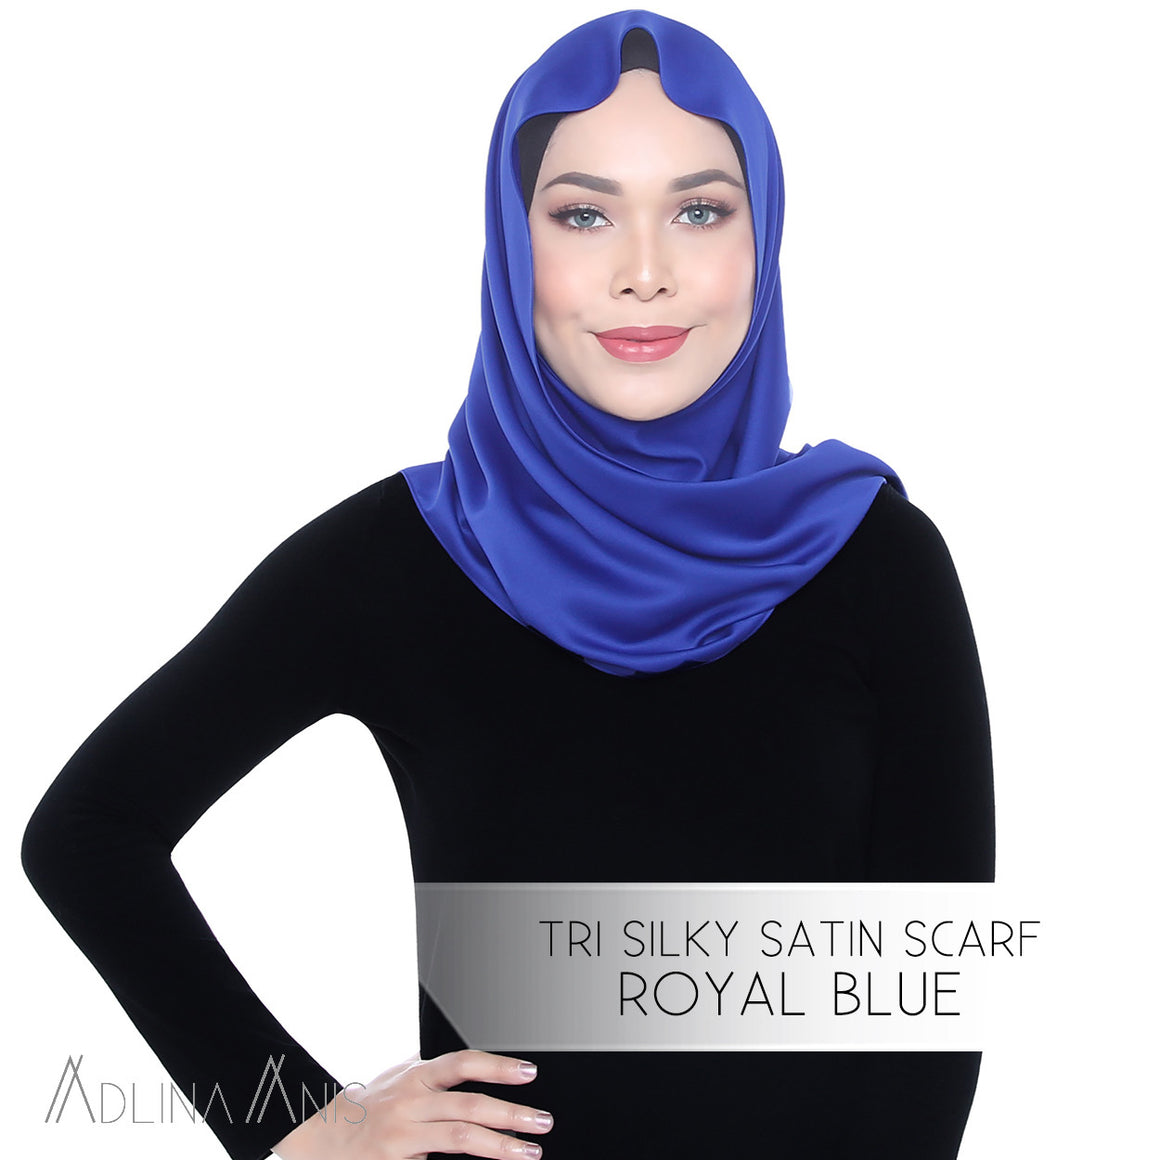 Tri Silky Satin Scarf - Royal Blue